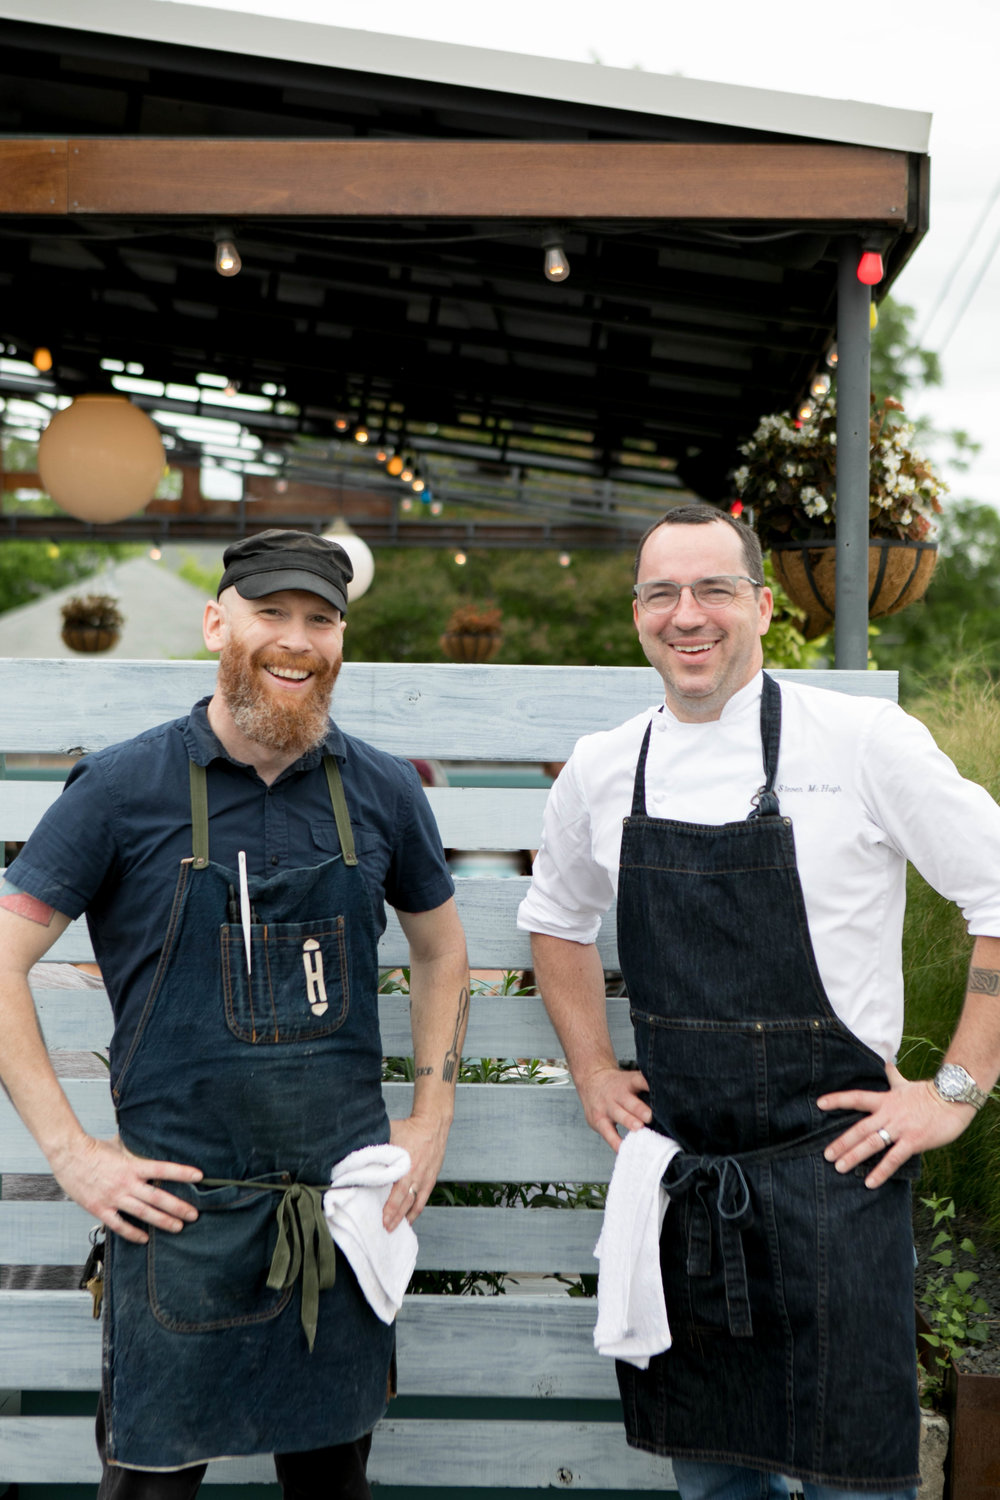 Chefs for The Hightower, portraits for Hot Luck Food Festival.